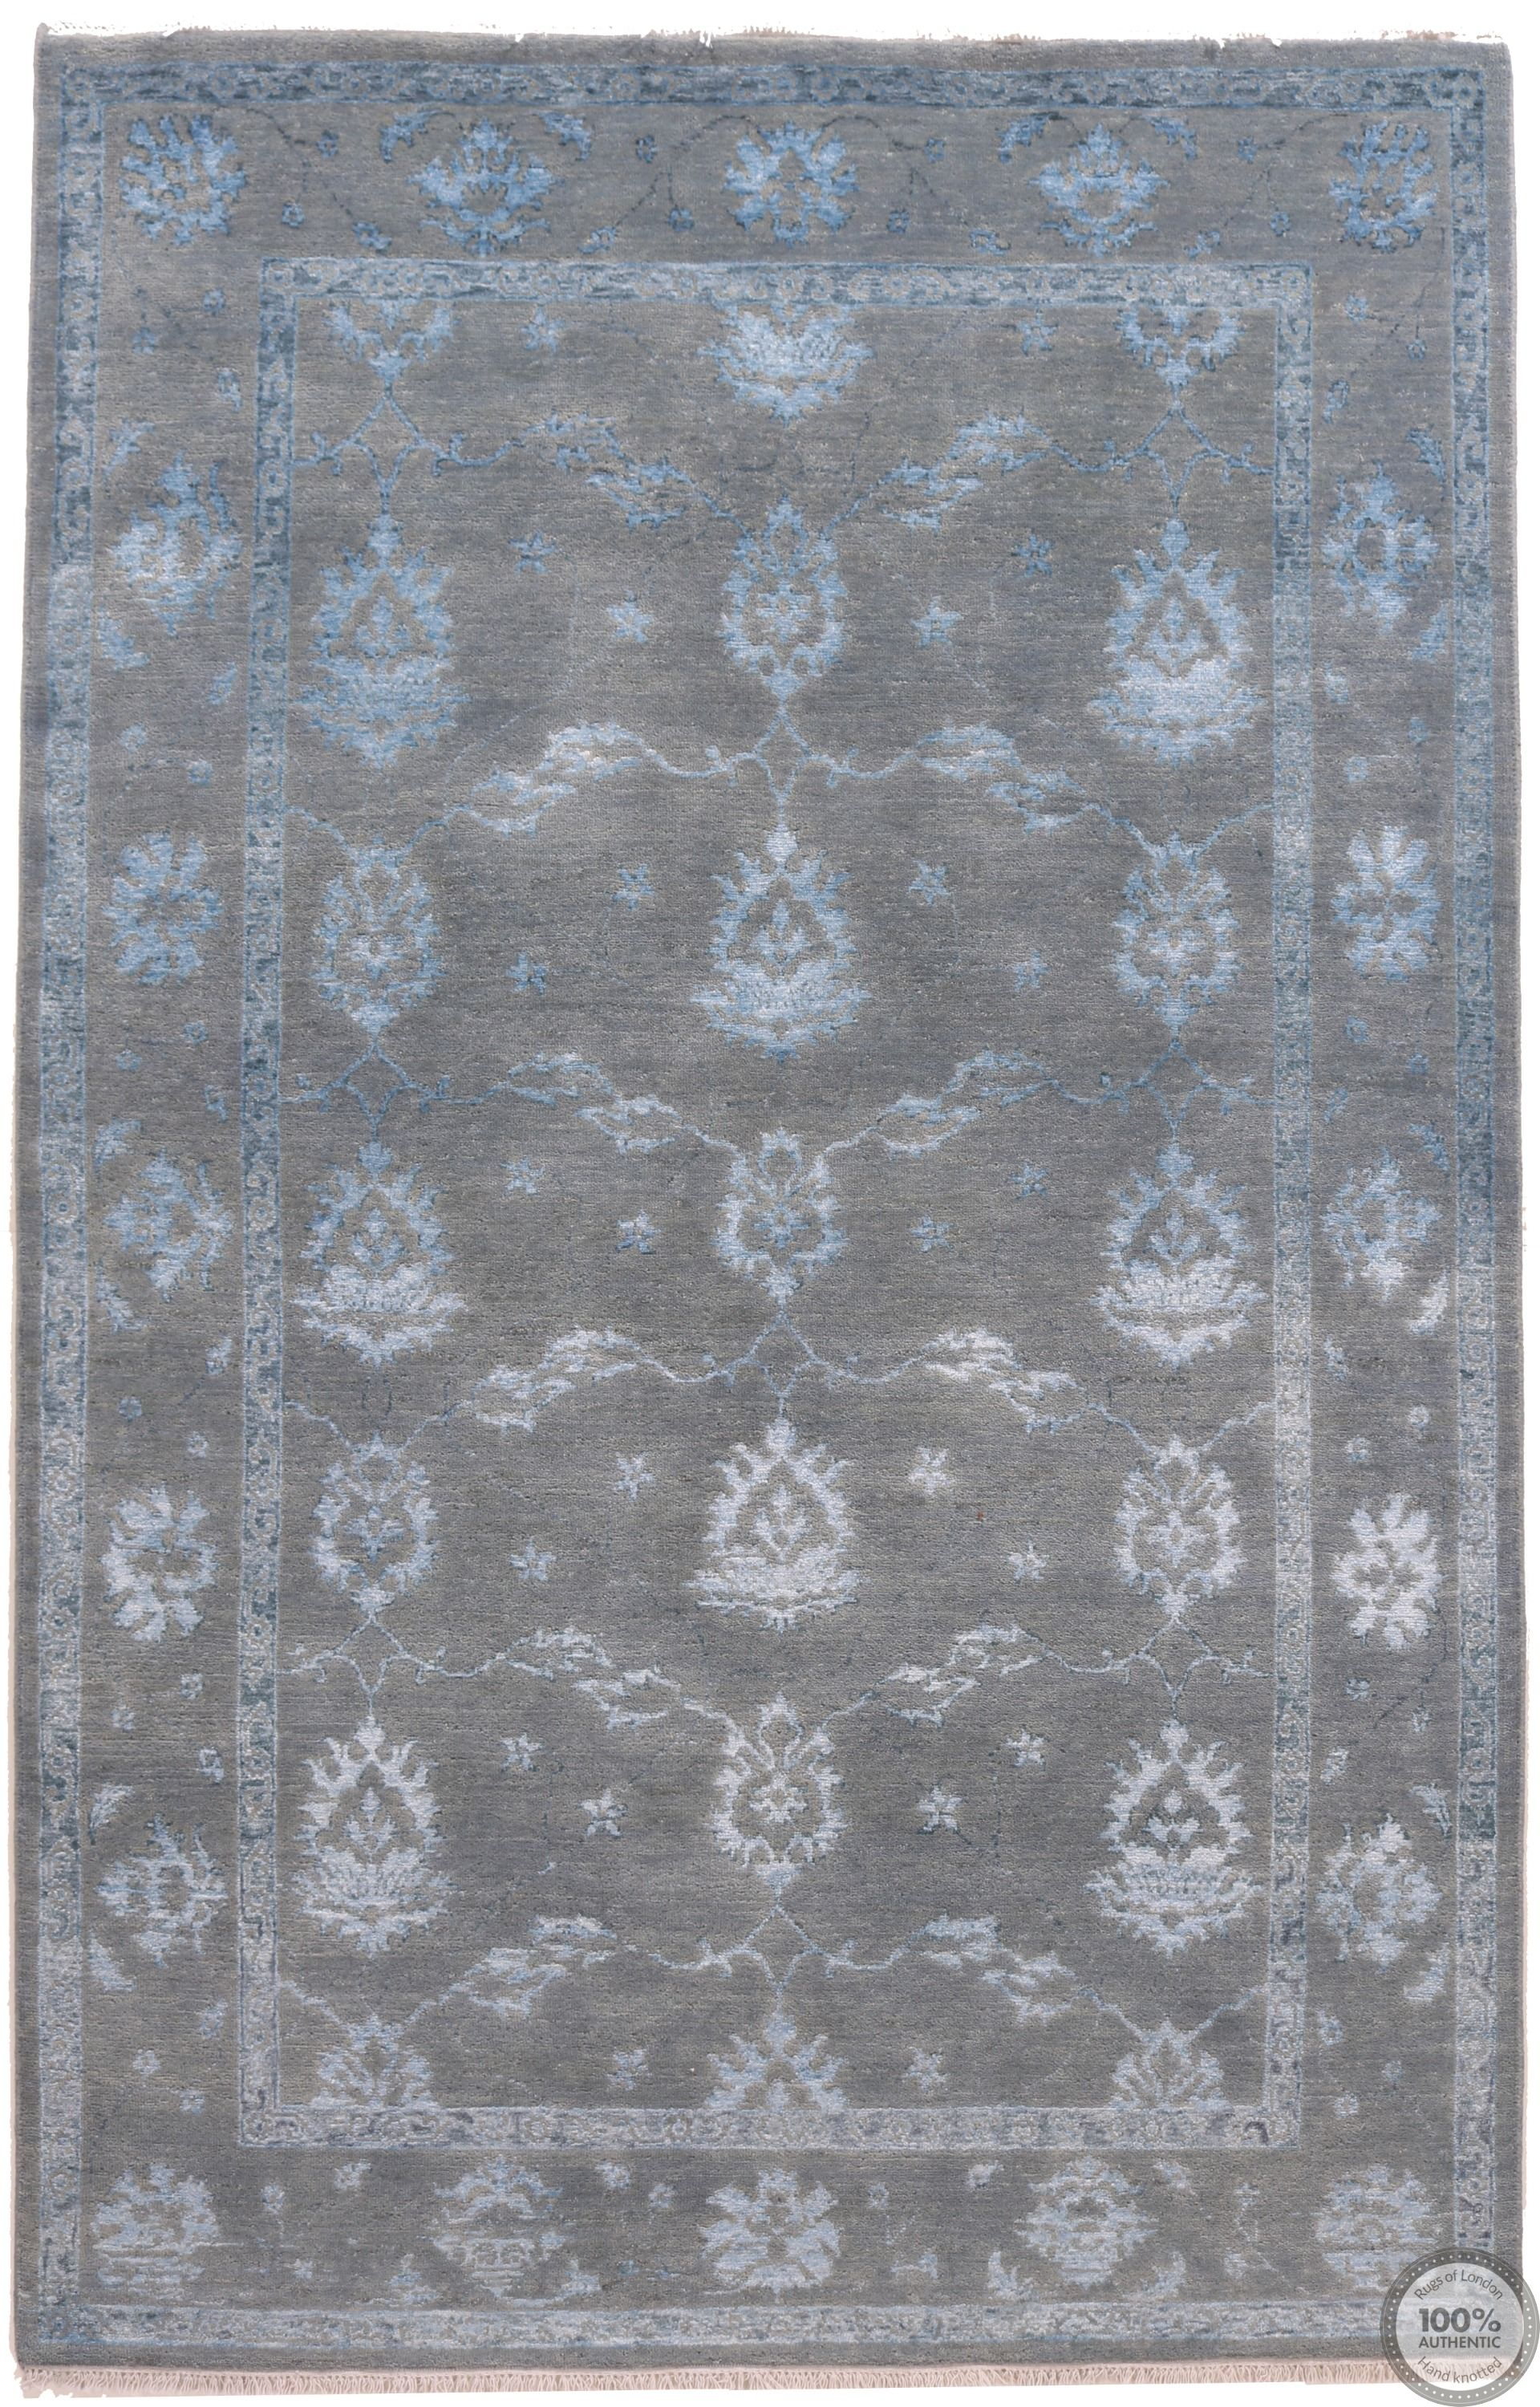 Garous Ziegler design rug with part silk 7'9 x 5'1